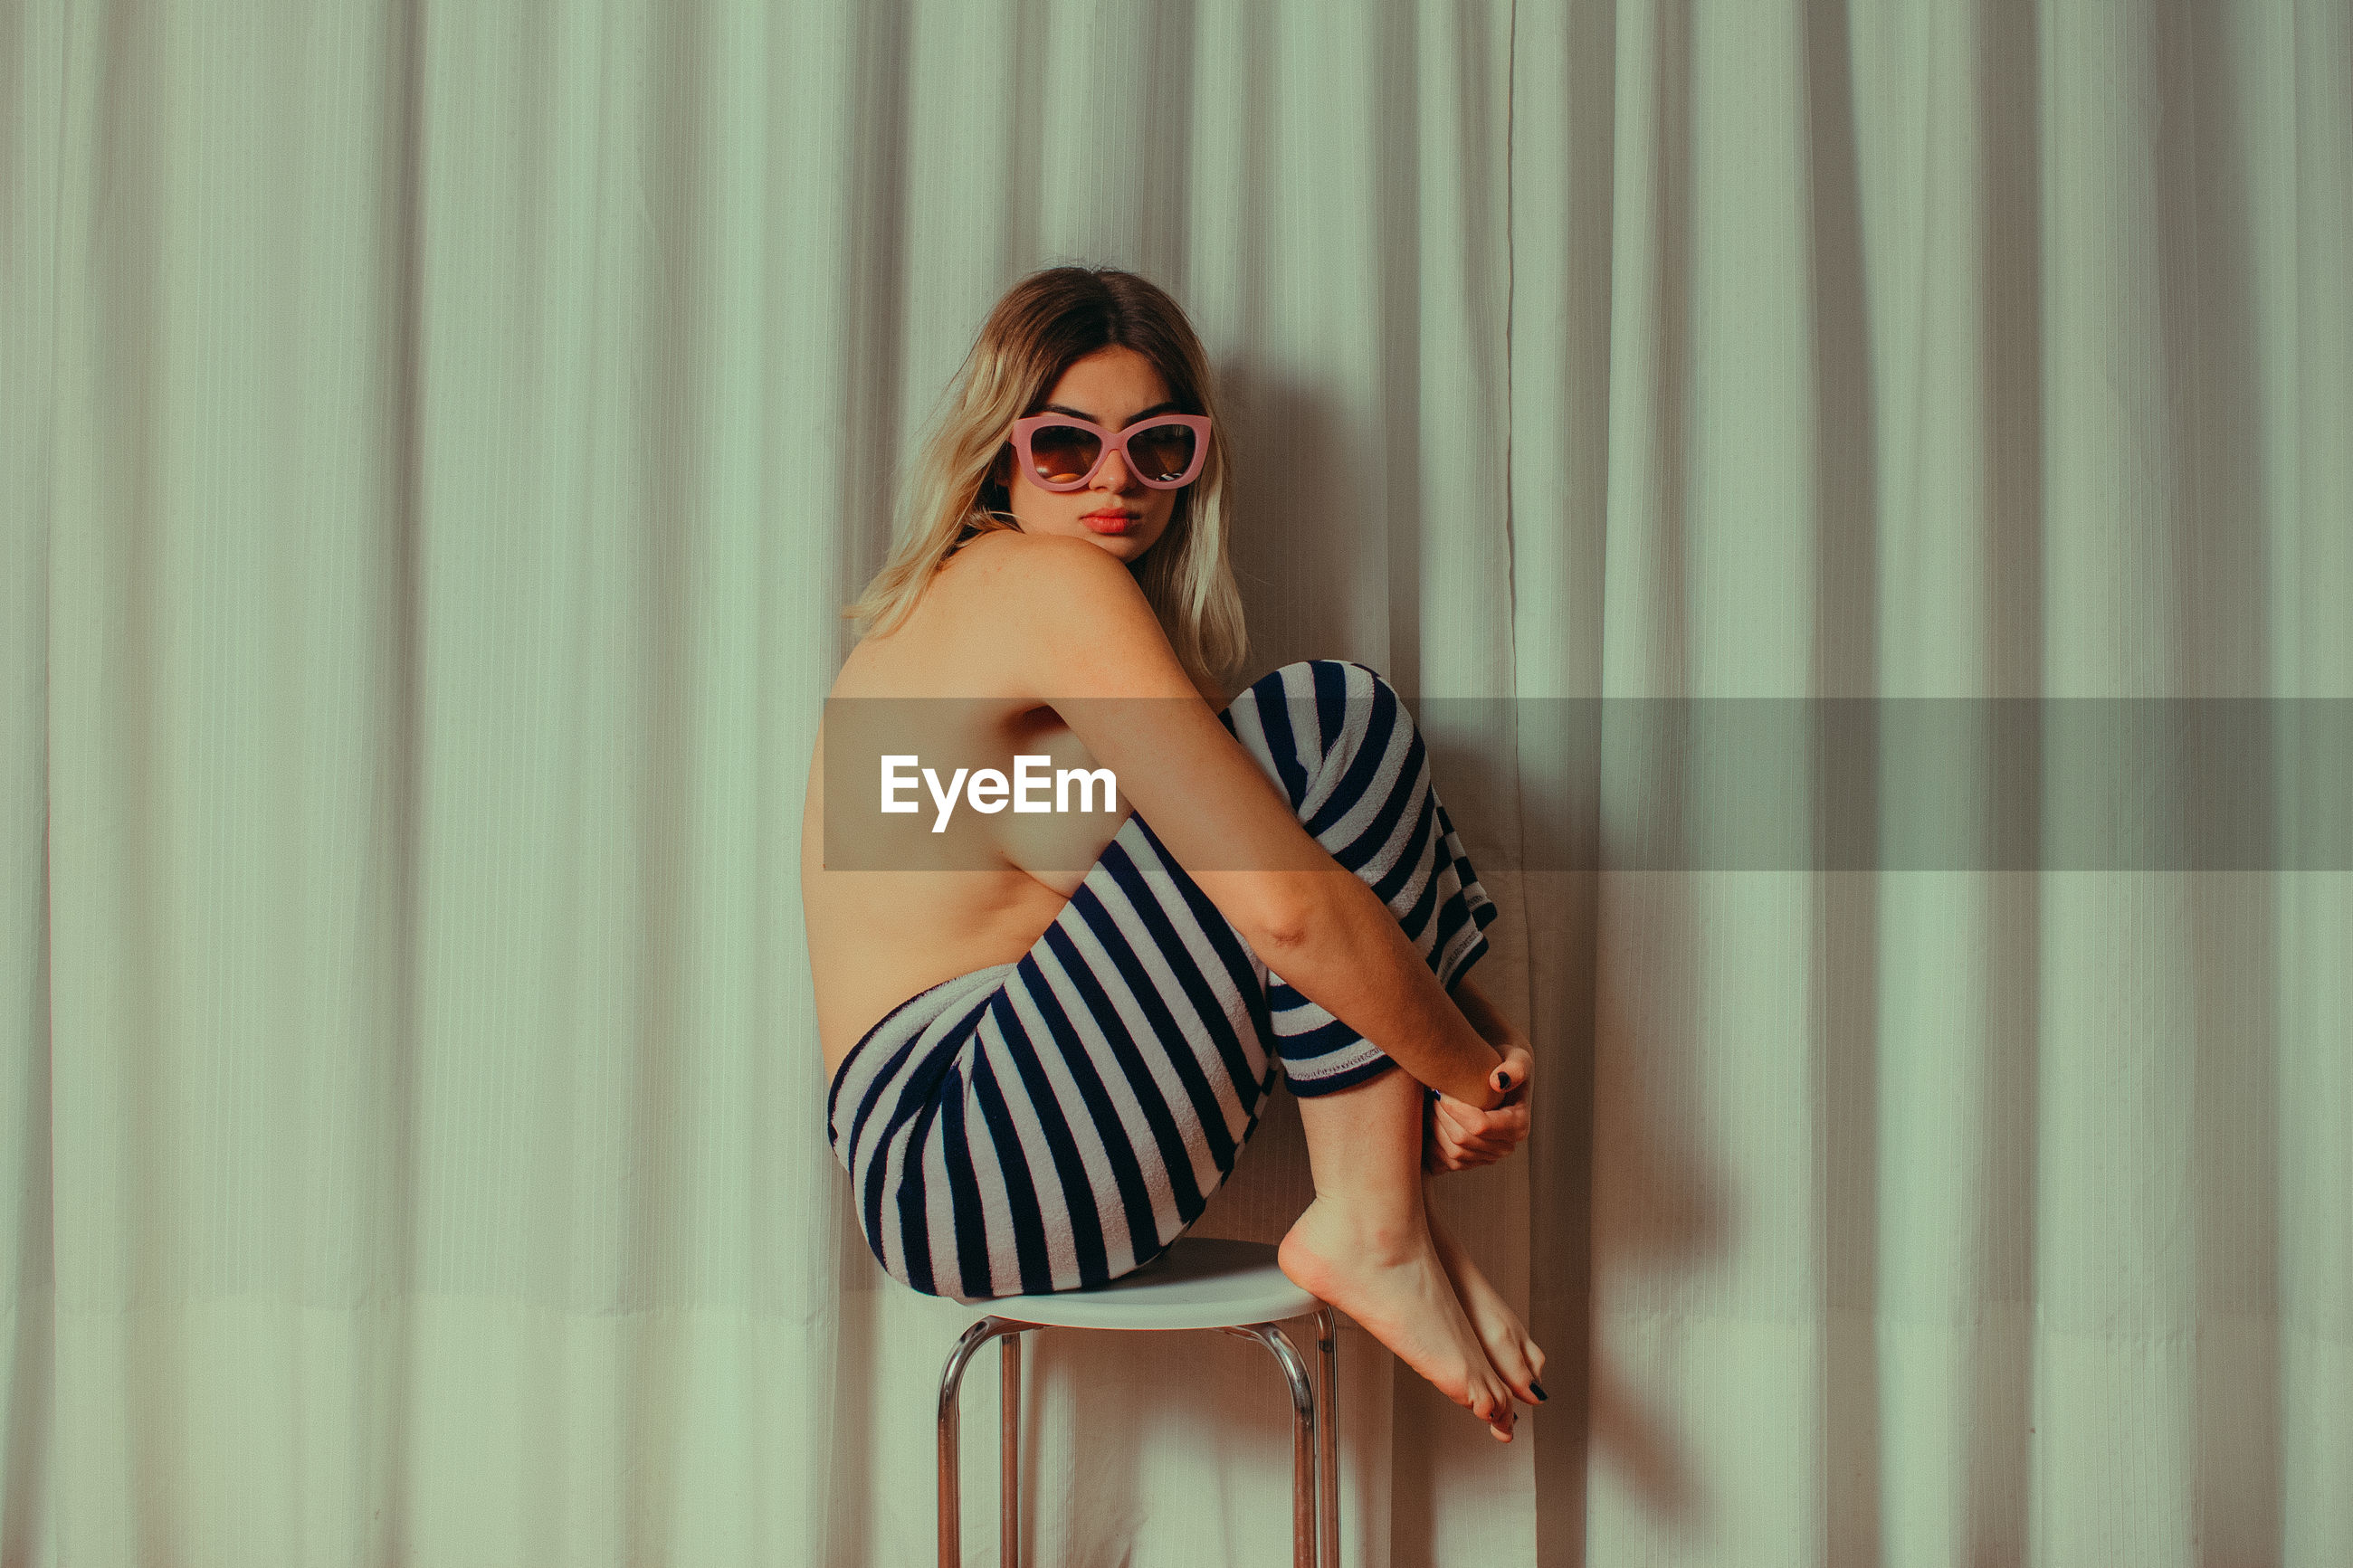 Side view of shirtless young woman wearing sunglasses while sitting on chair by curtain